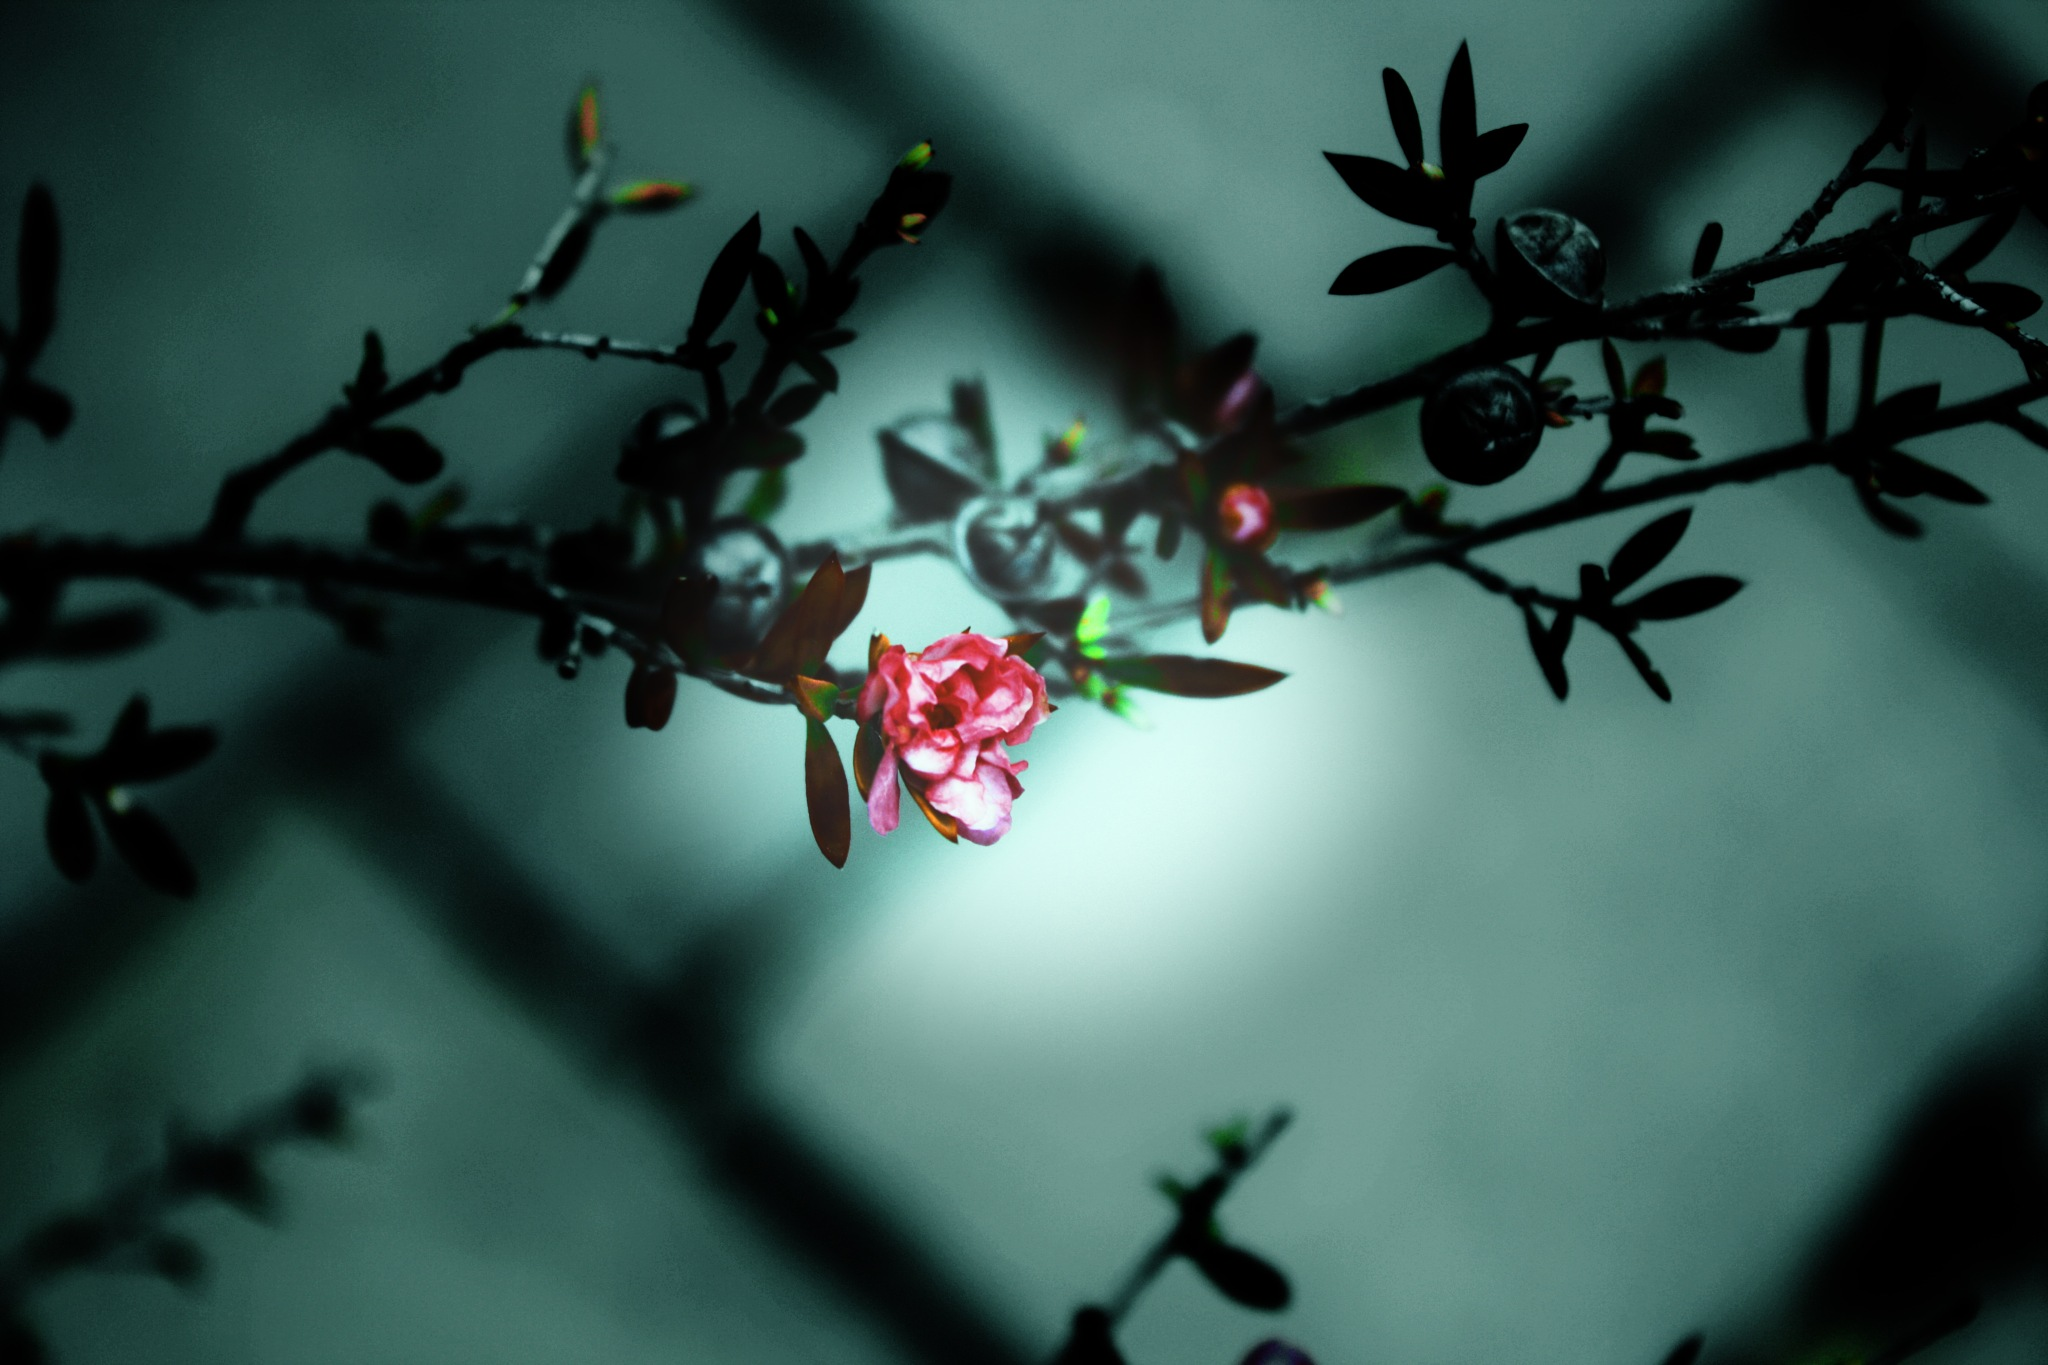 The Lone Blossom by pua